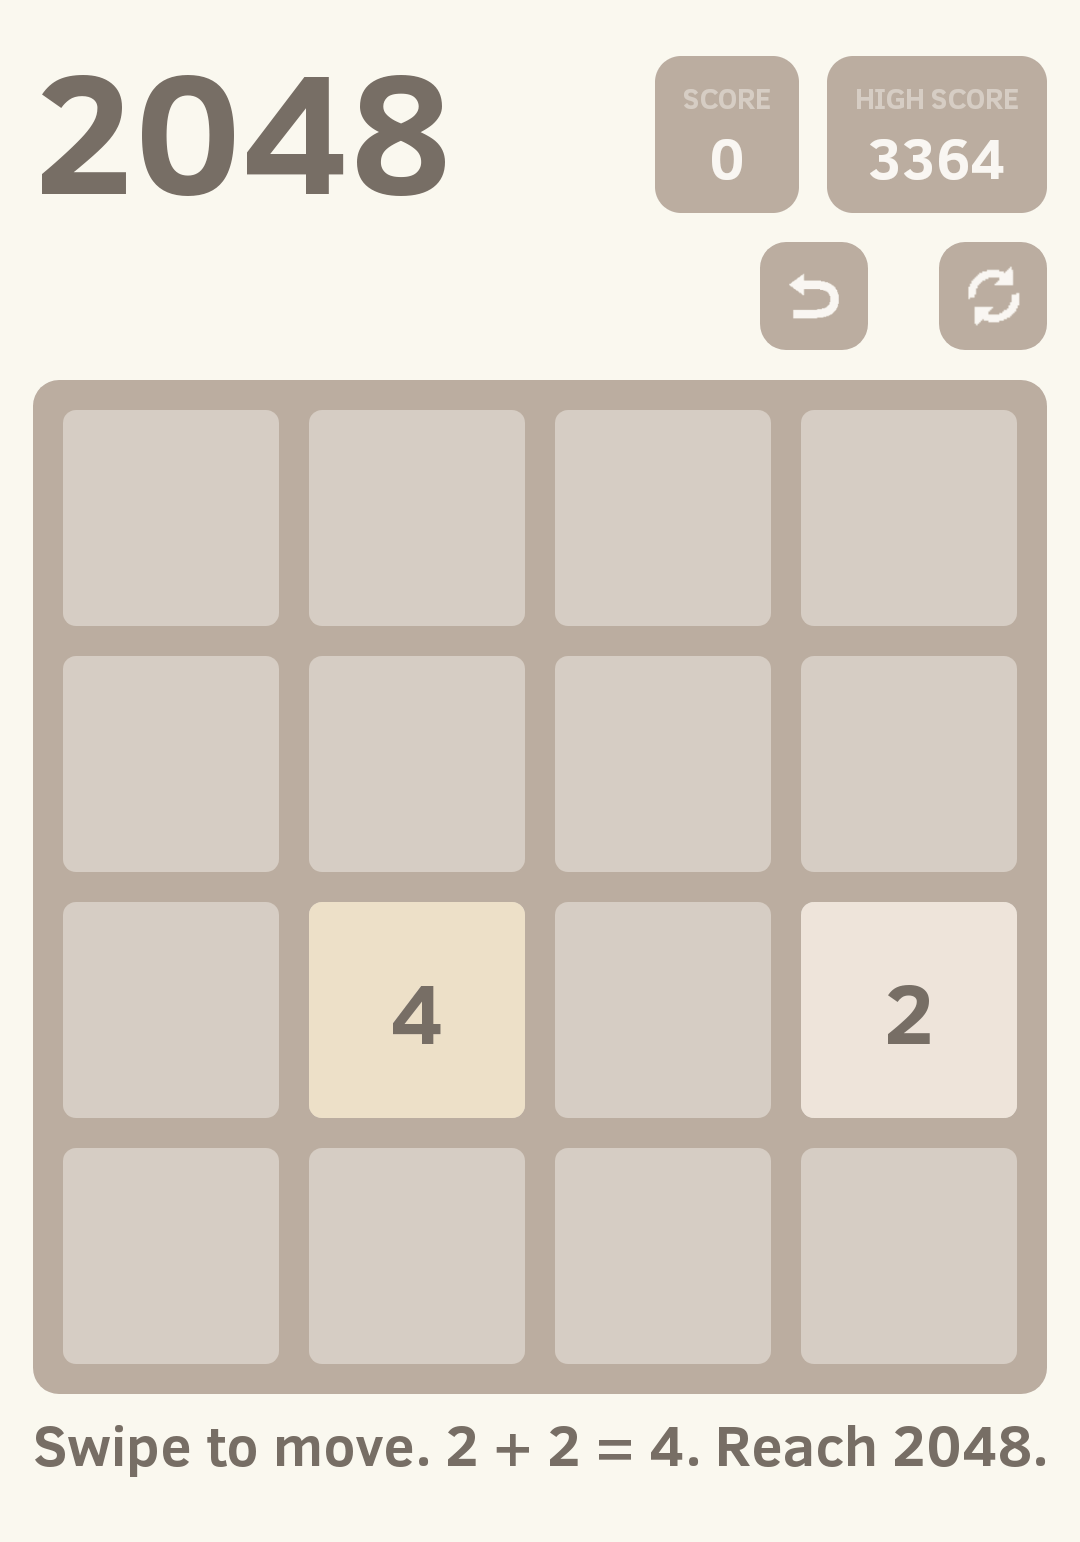 2048 welcome page